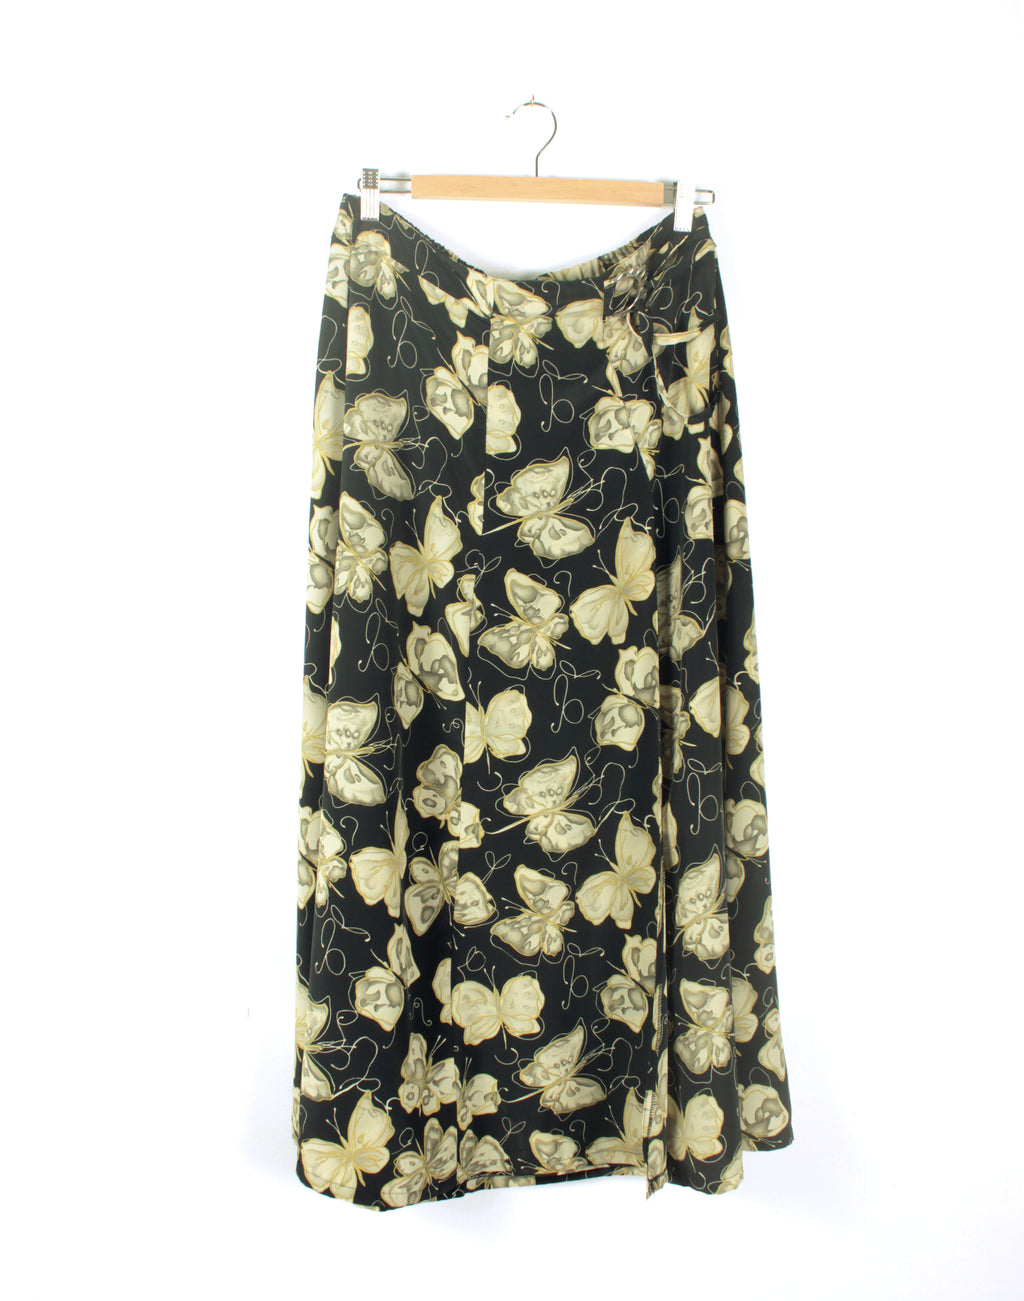 Vintage 90's Long Skirt Butterfly Floral